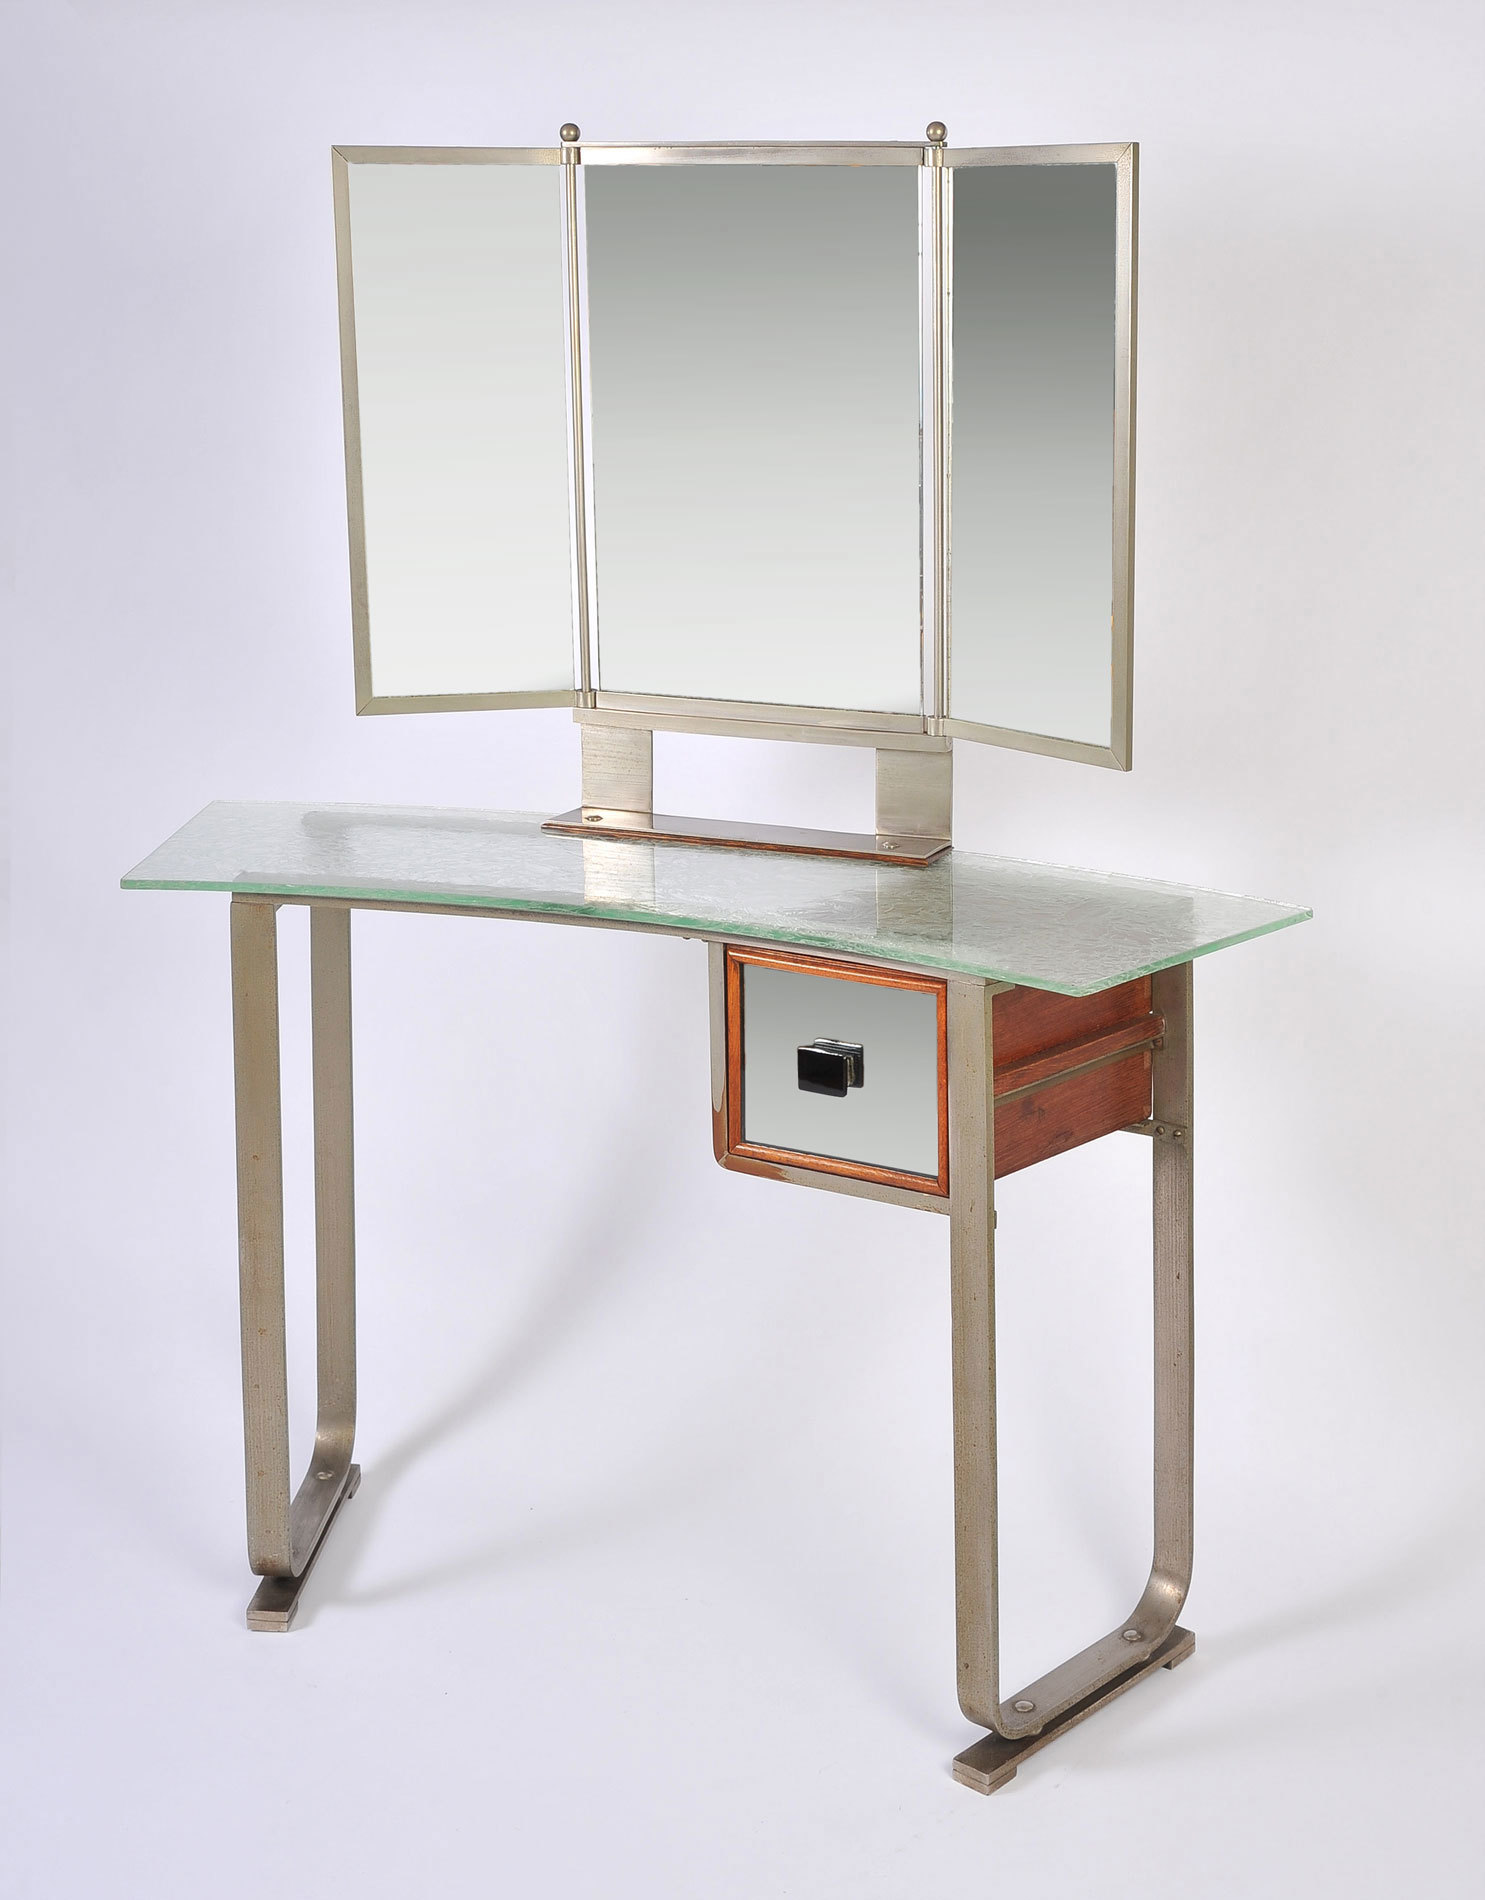 Italian Glass Chrome Dressing Table 03Ajpg